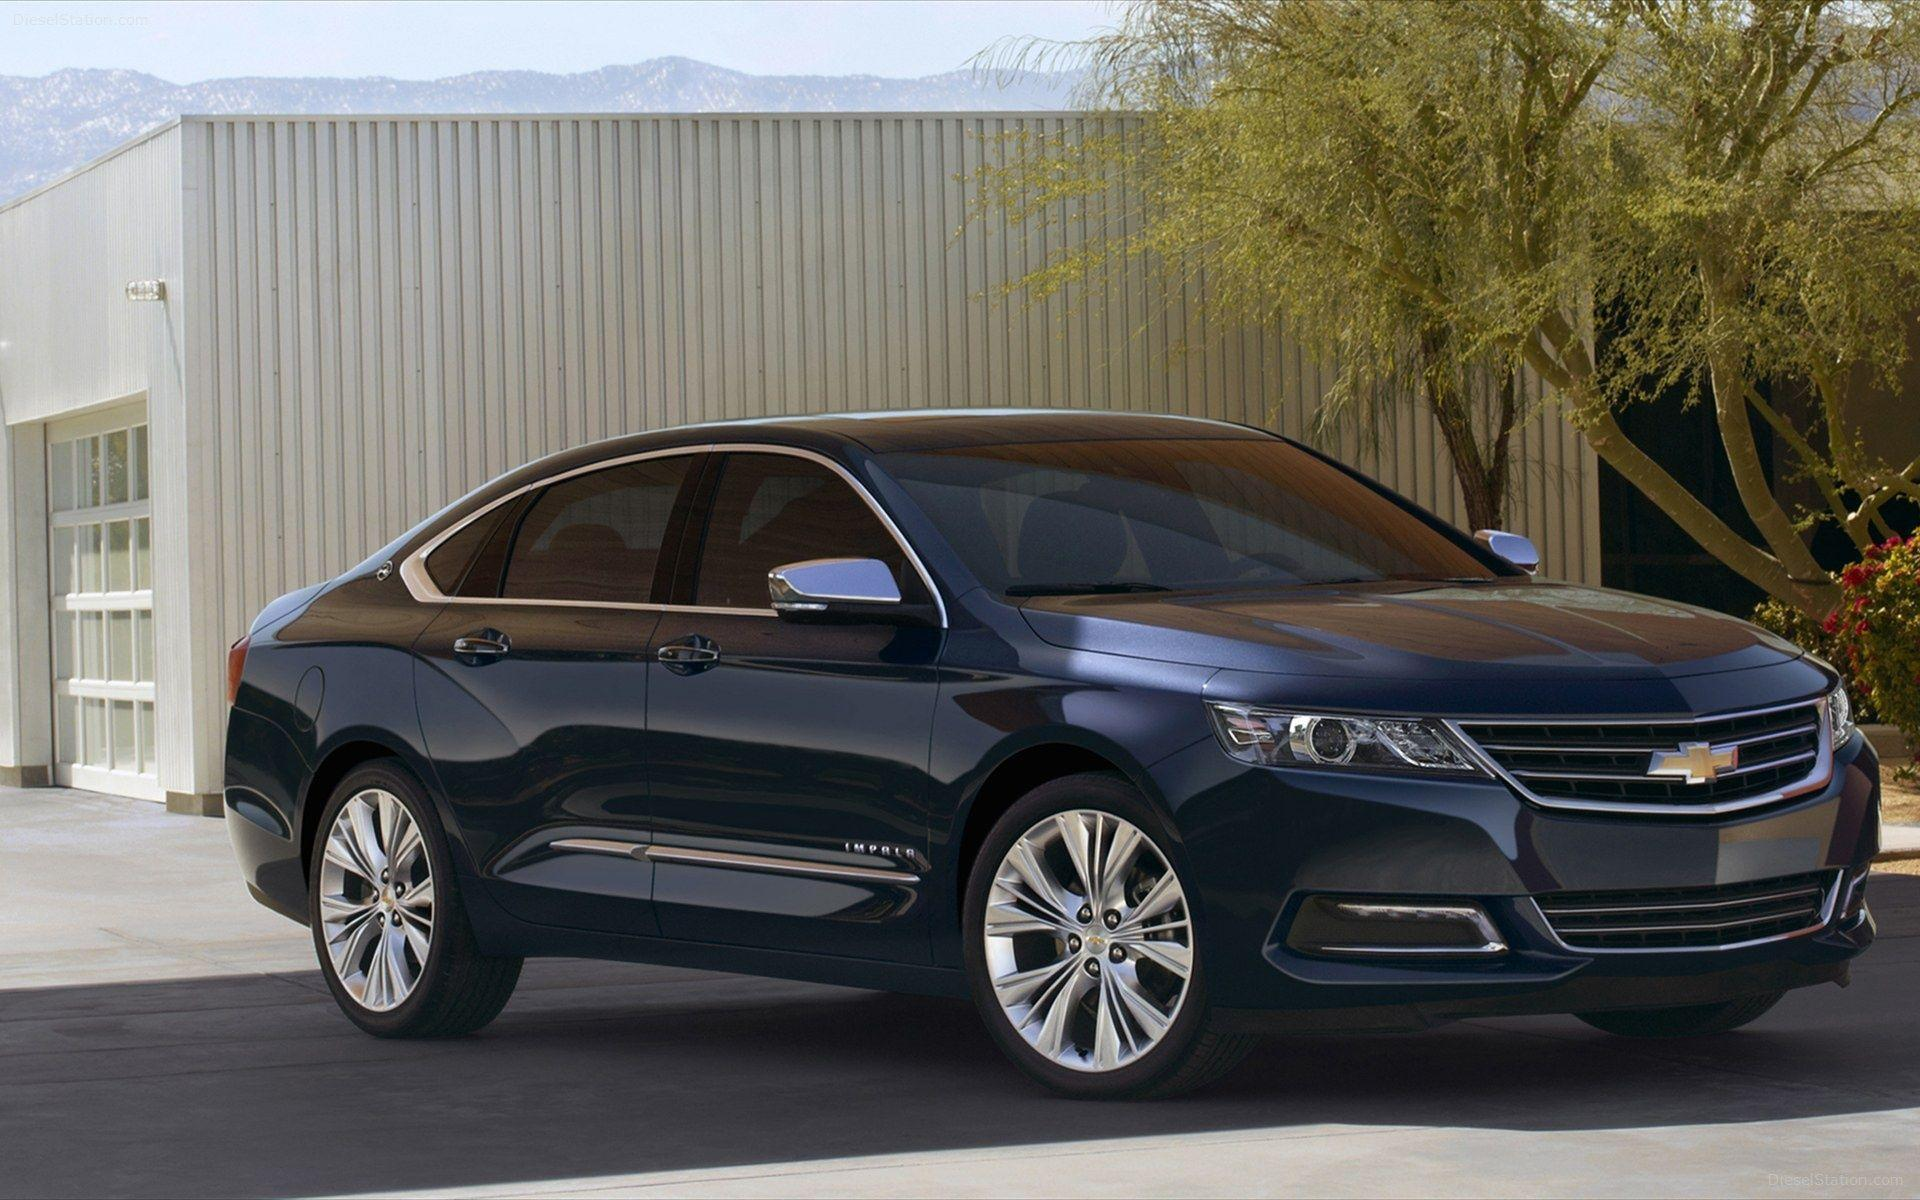 2014 Chevrolet Impala Wallpapers